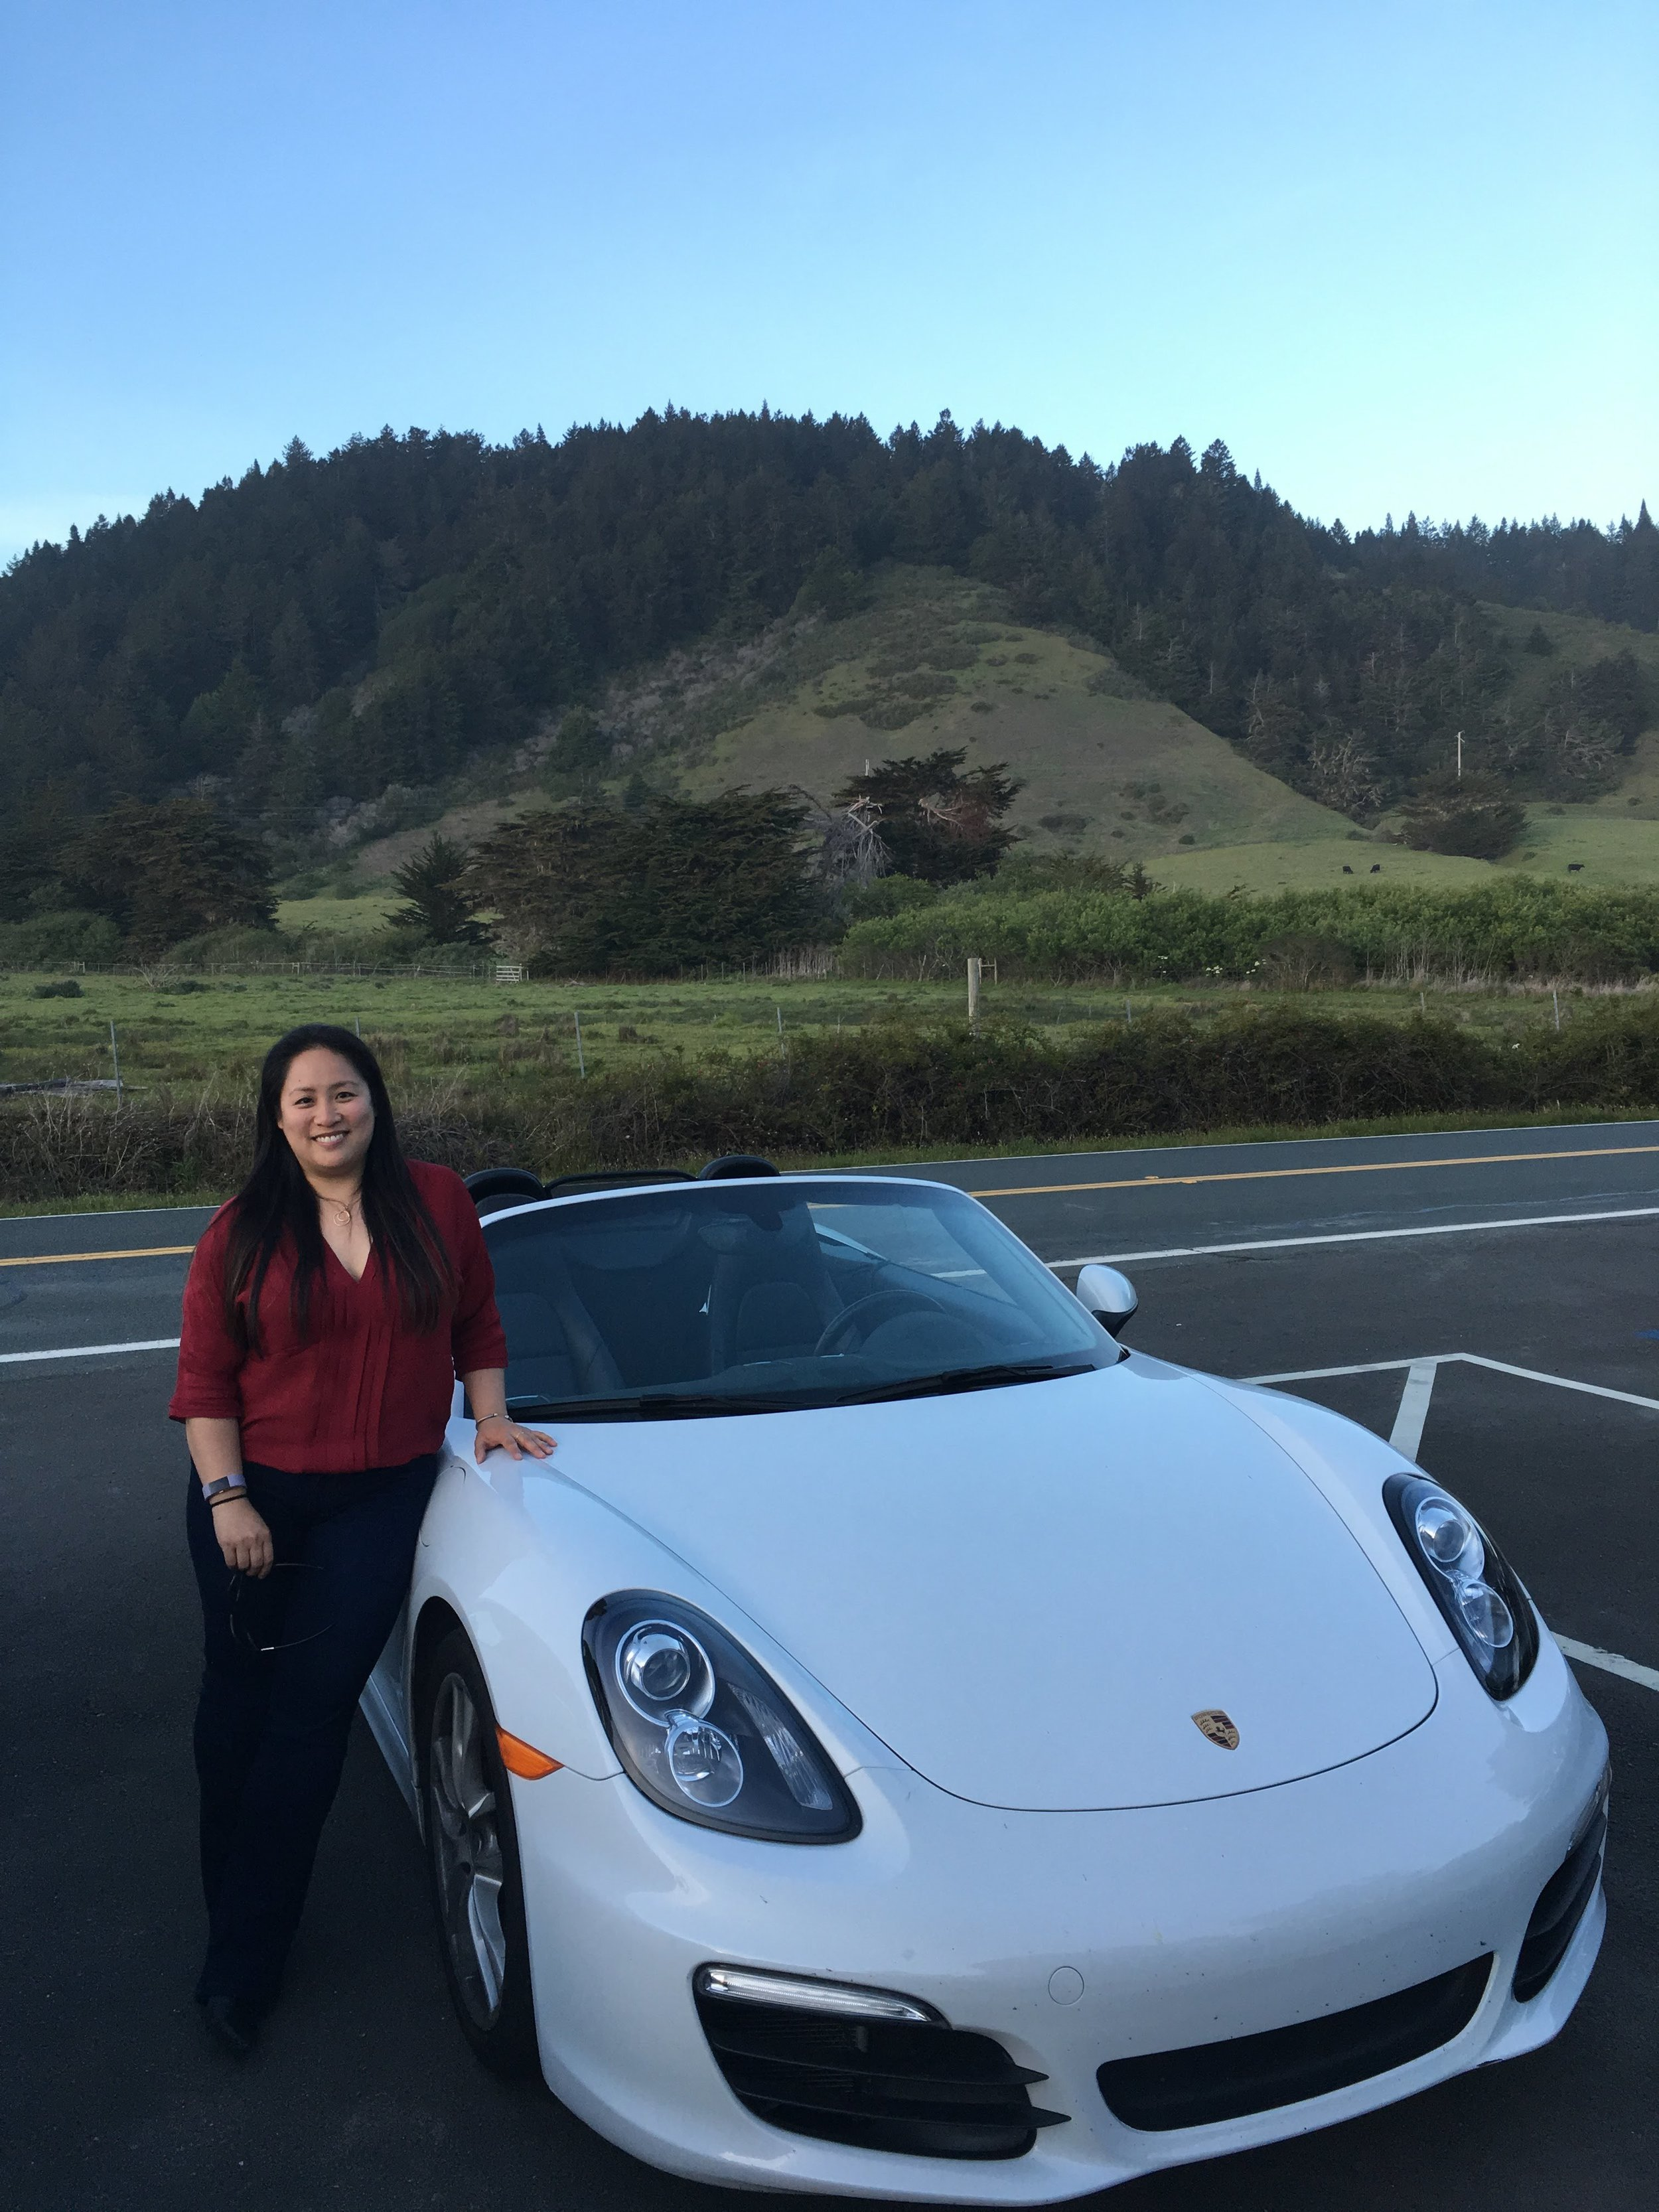 This photo of me and my convertible Porsche Boxster is like a unicorn—you probably won't ever see it again.